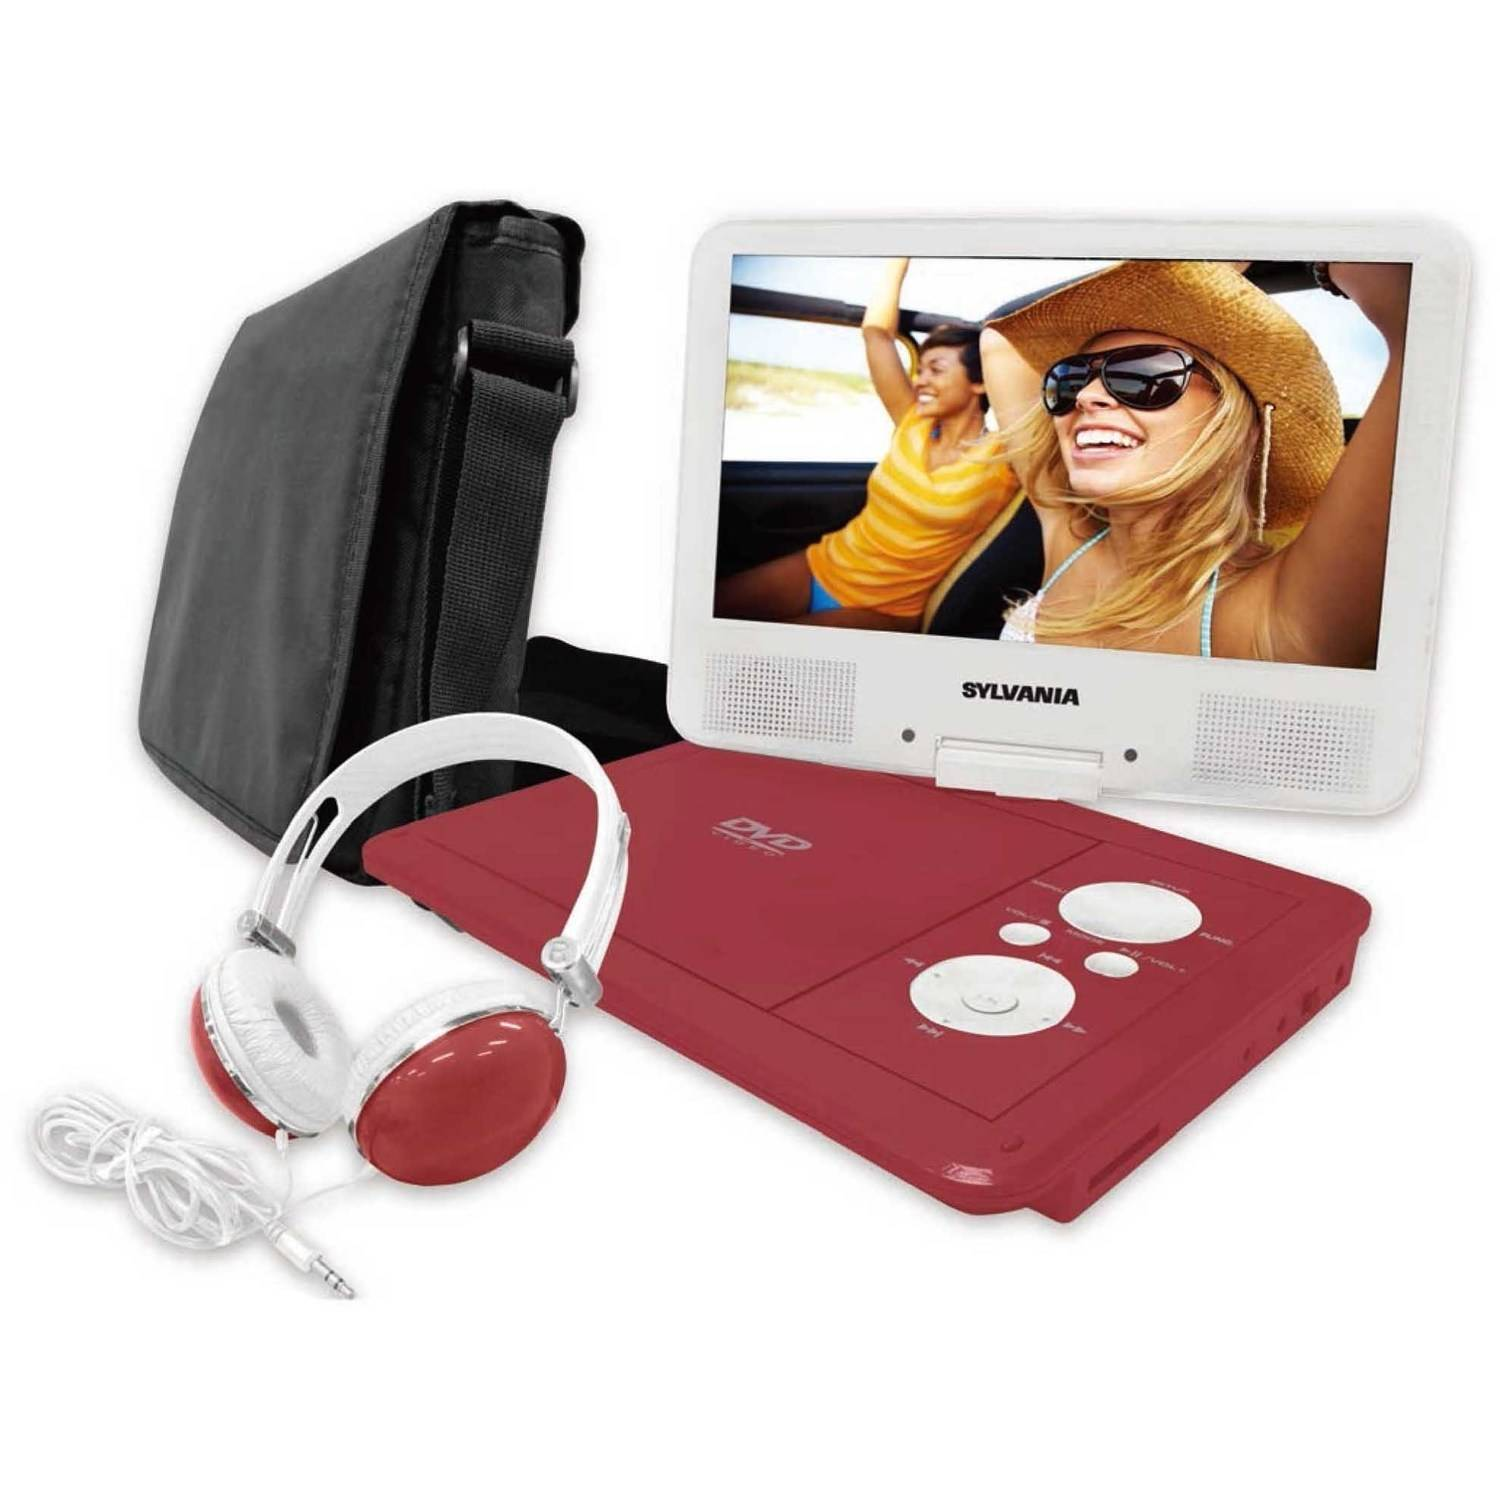 "Sylvania 9"" swivel screen portable dvd player with deluxe carry bag and matching headphones"